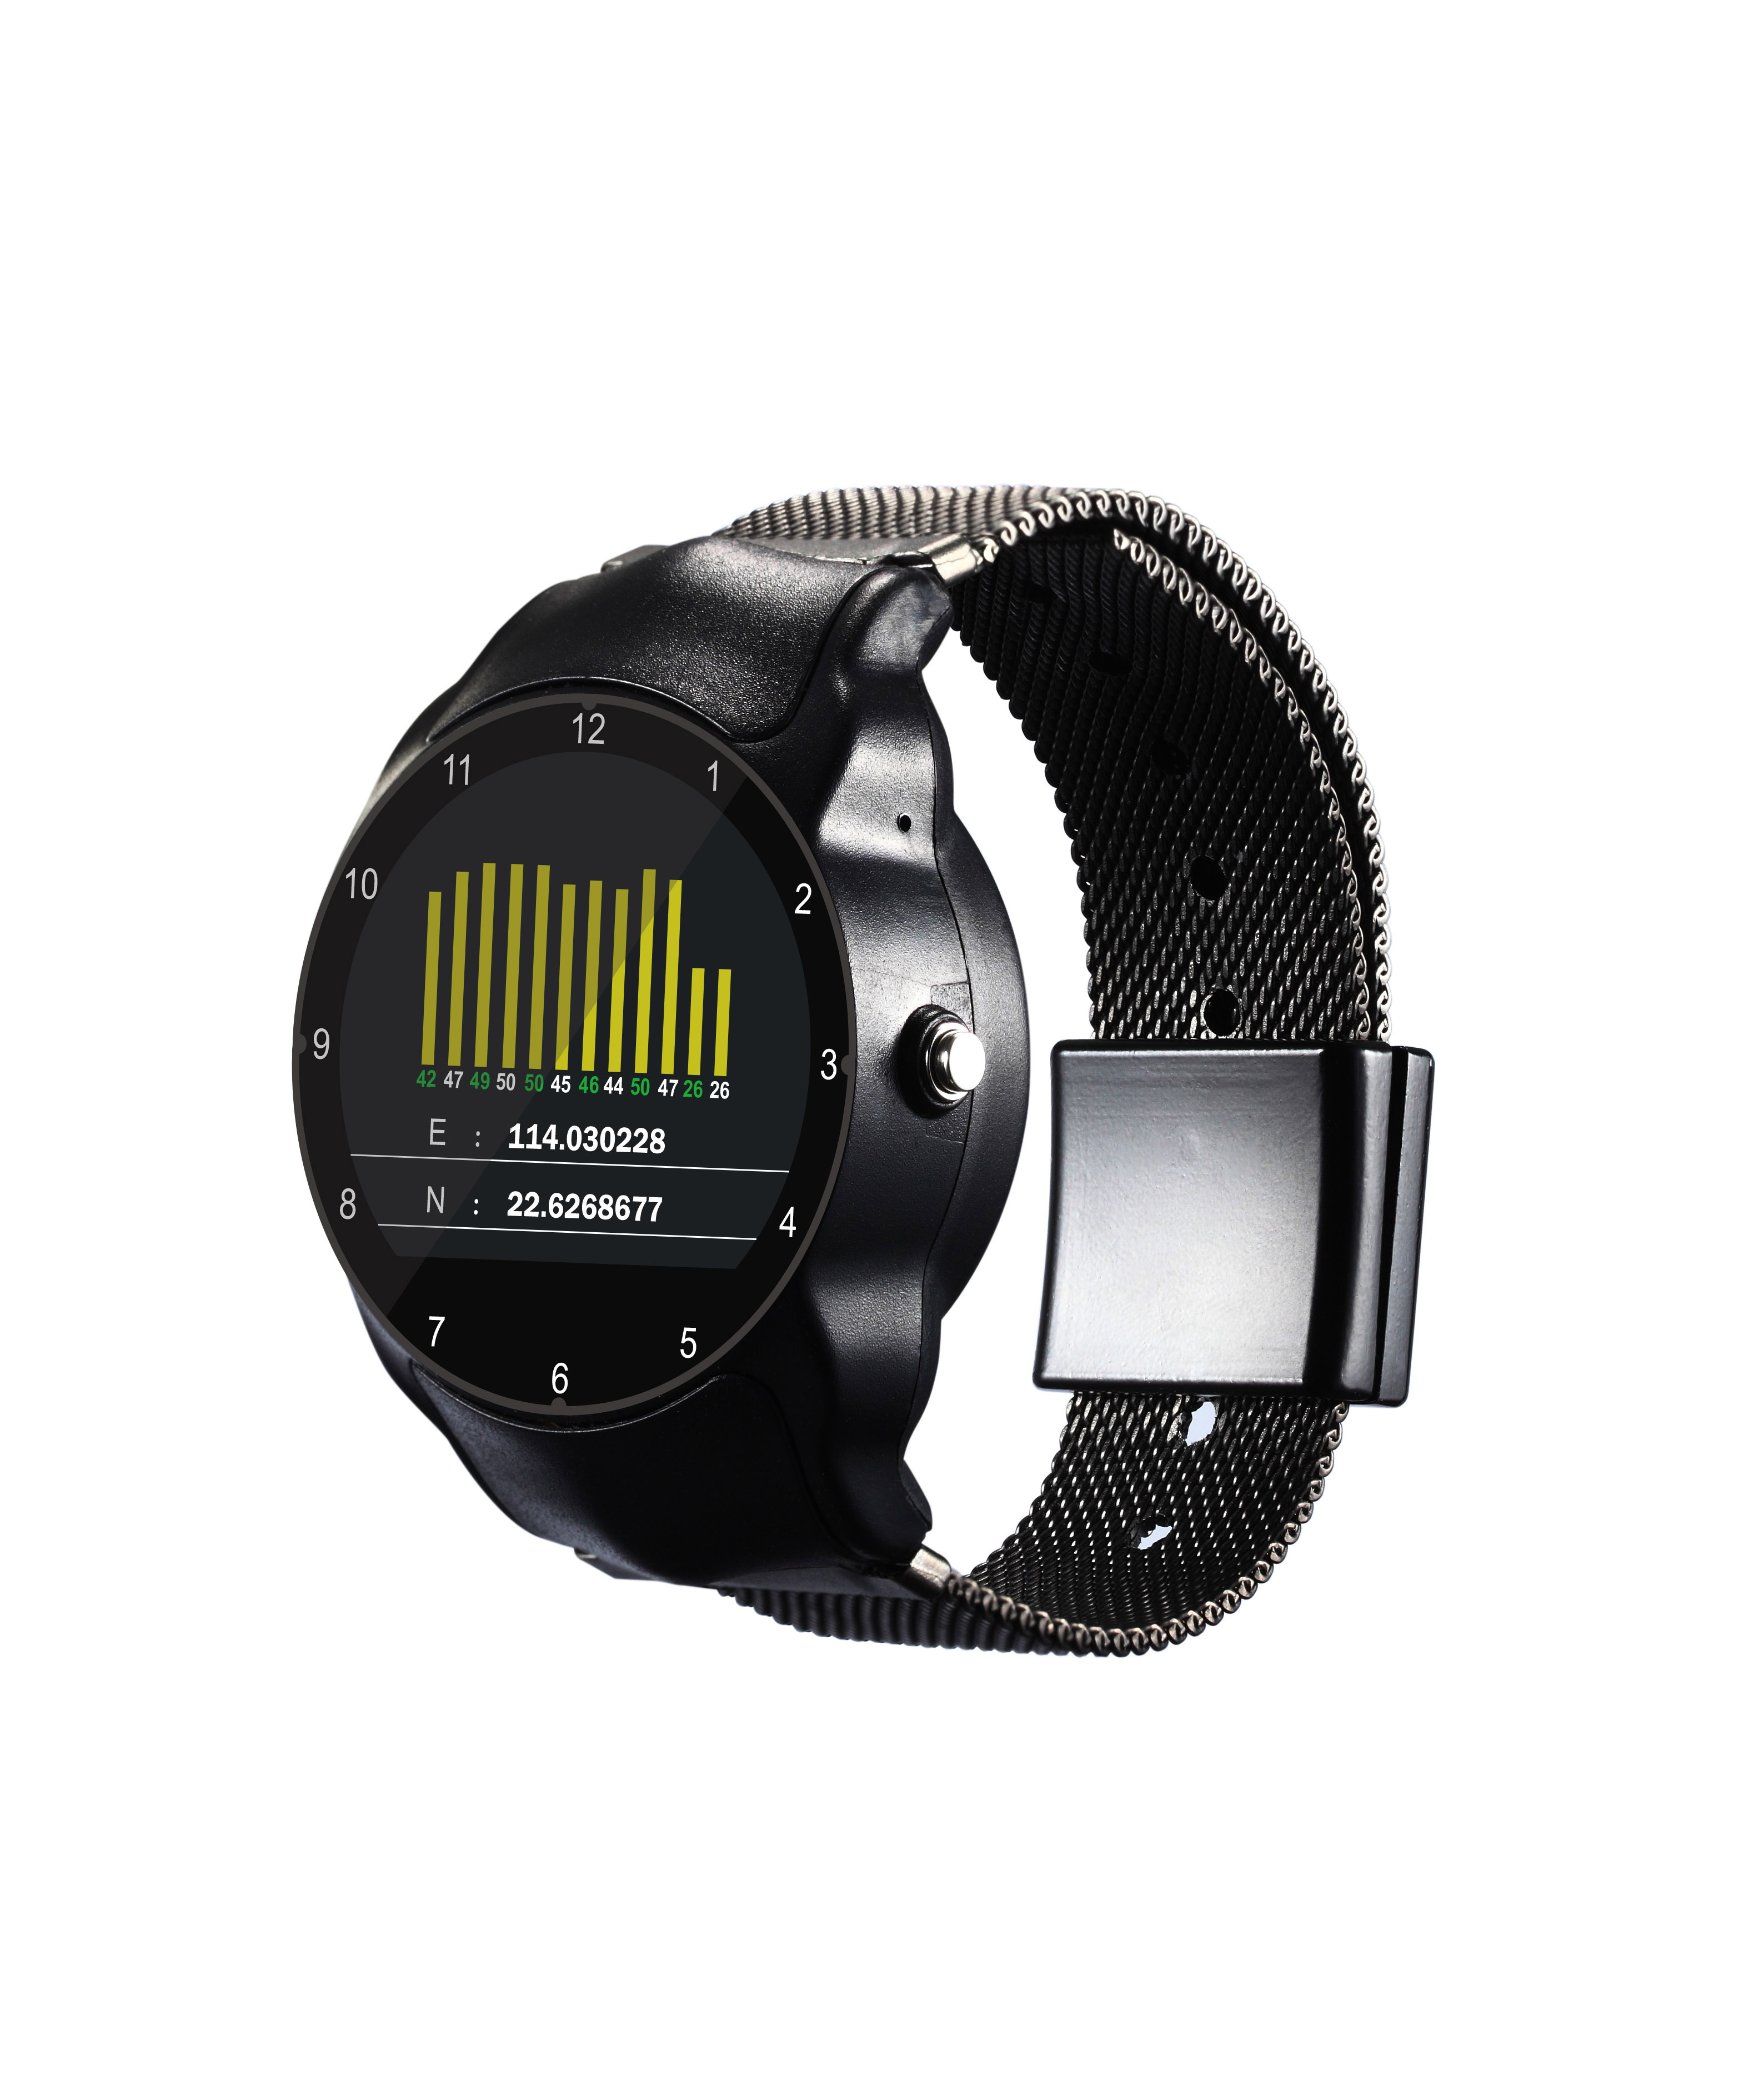 The role and function of 4G tamper-proof tracking wristband in judicial supervision